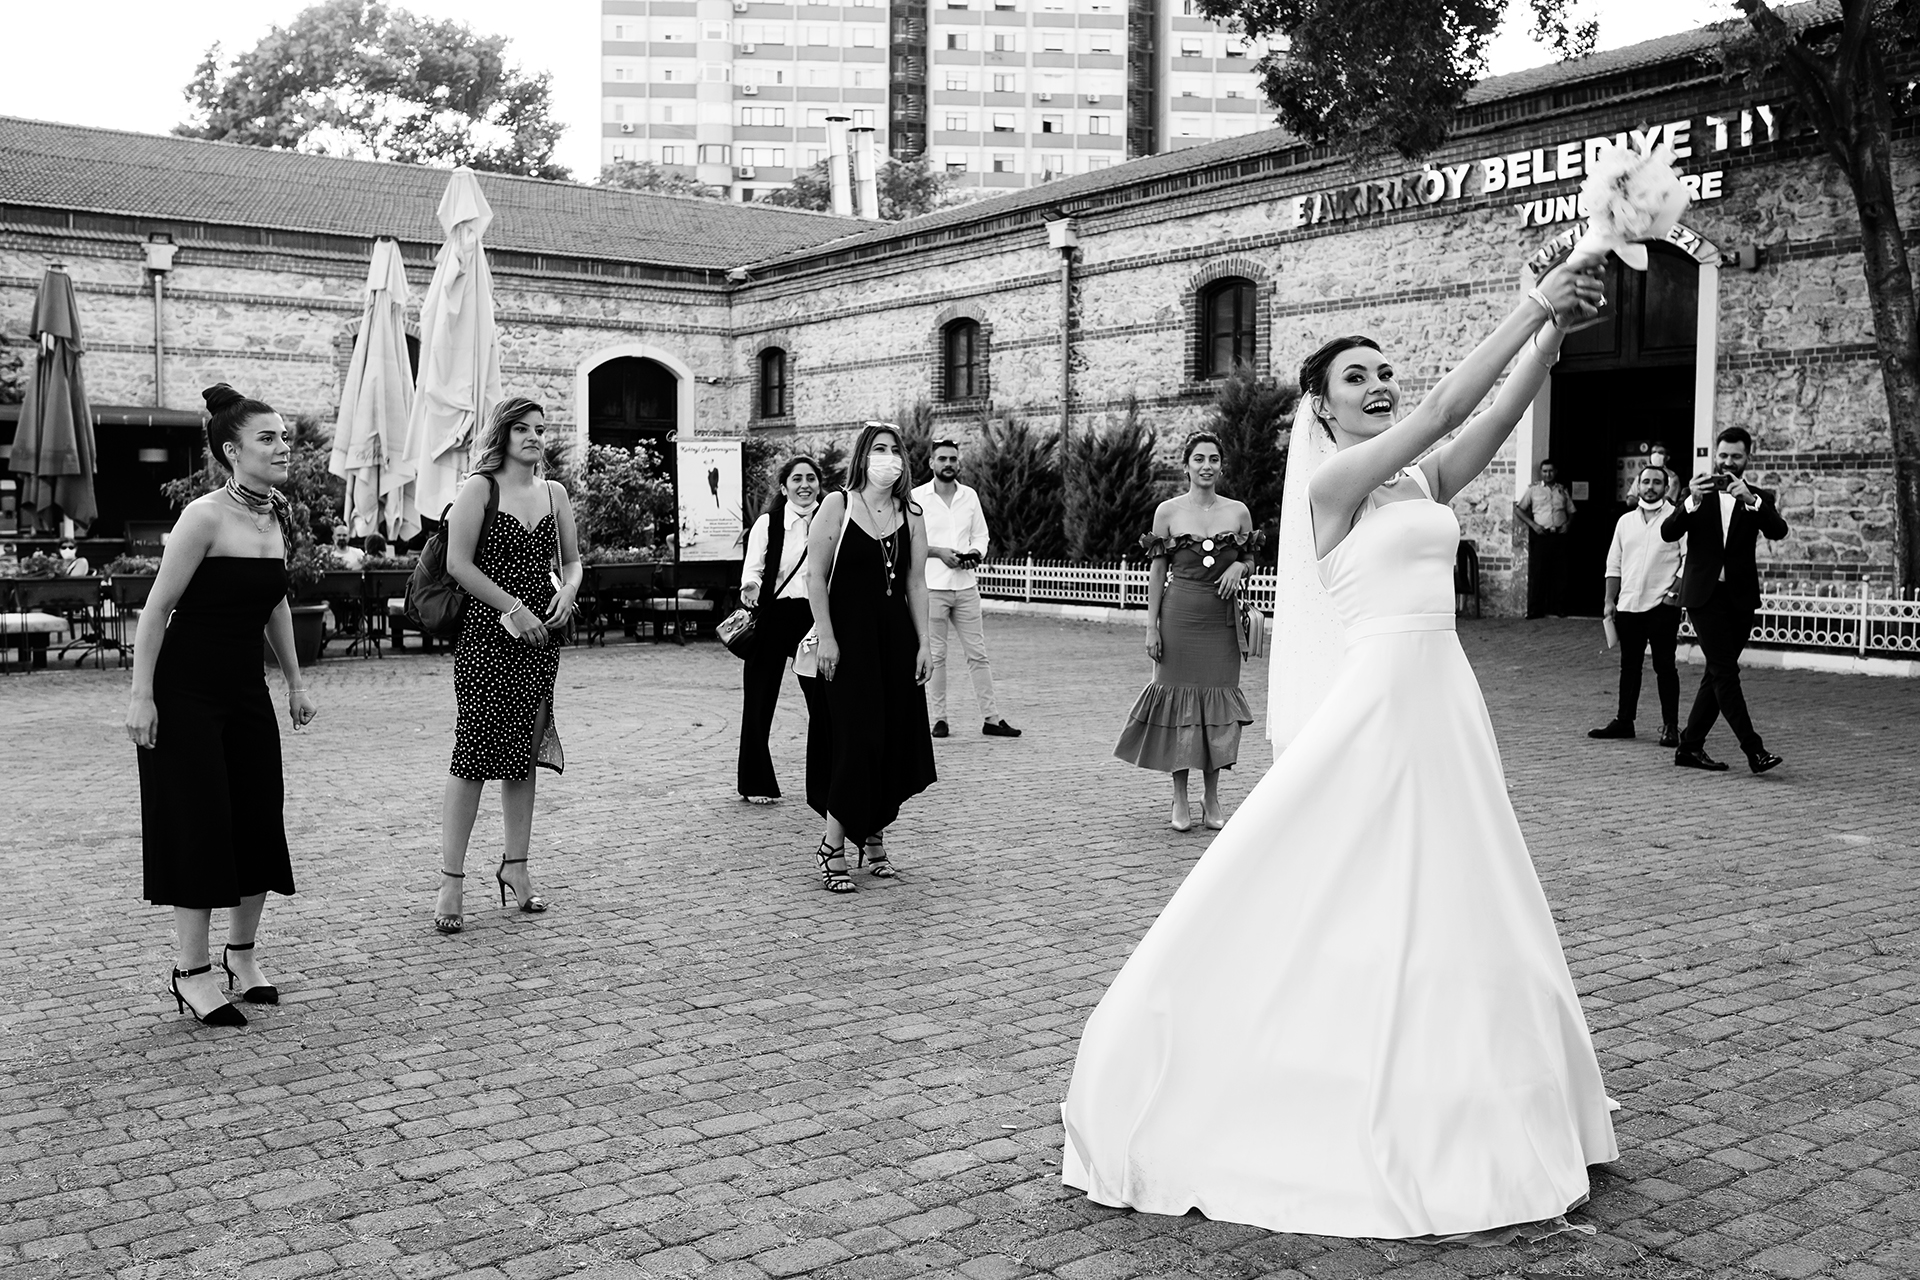 Local Municipality Belediye Istanbul, Turkey Wedding Image | Tossing bridal bouquet in front of the registry office